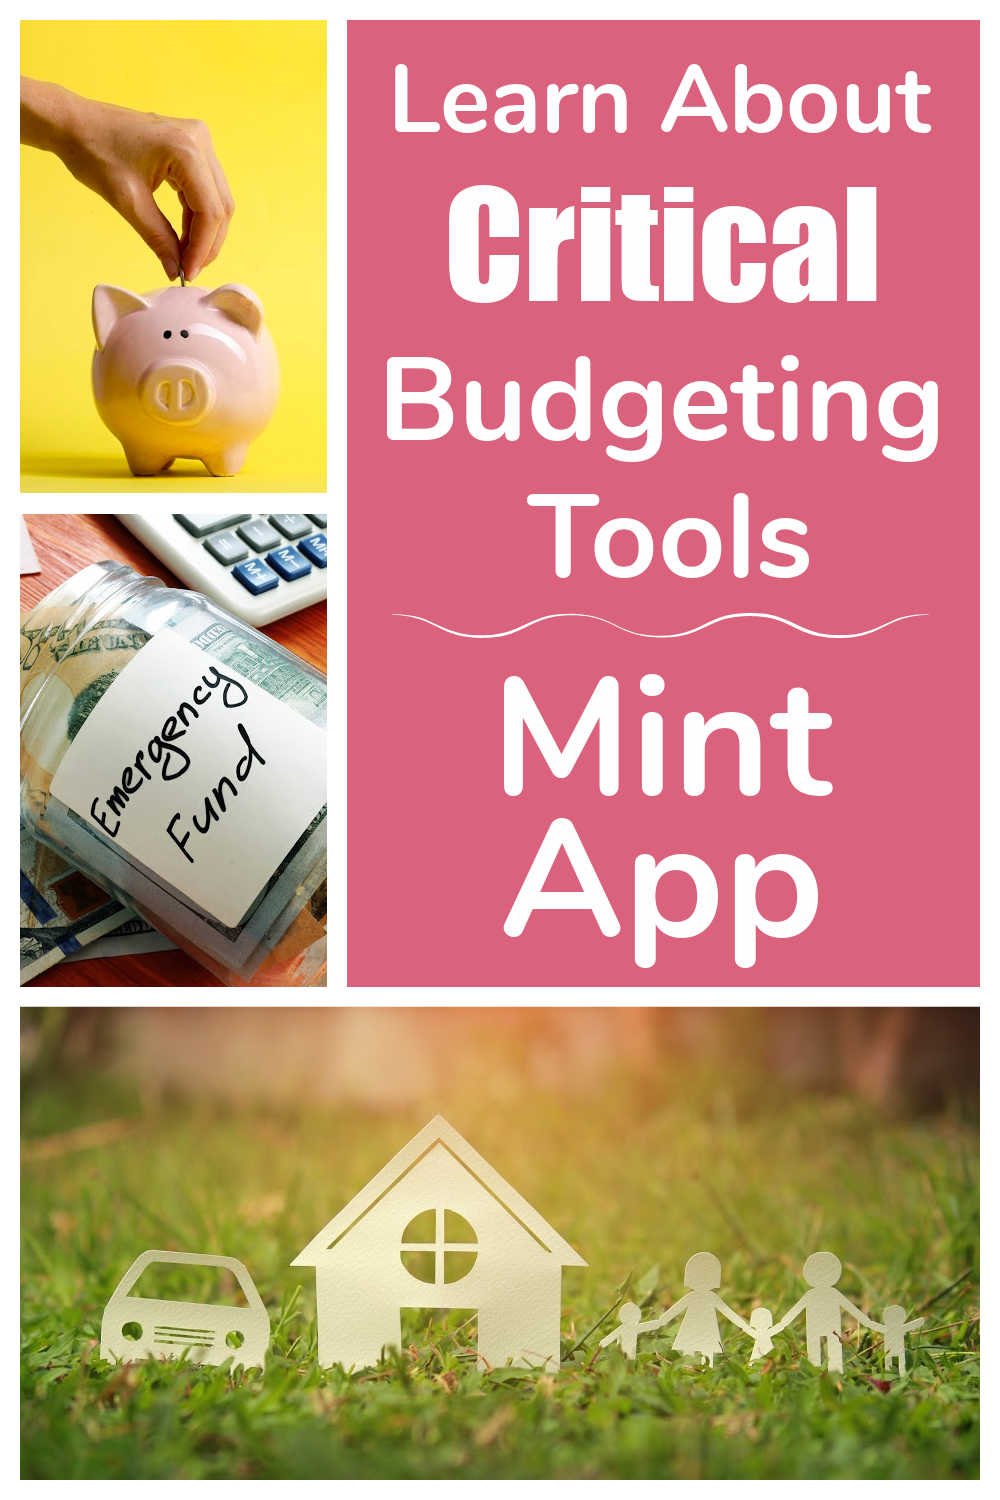 How to Use the Mint App